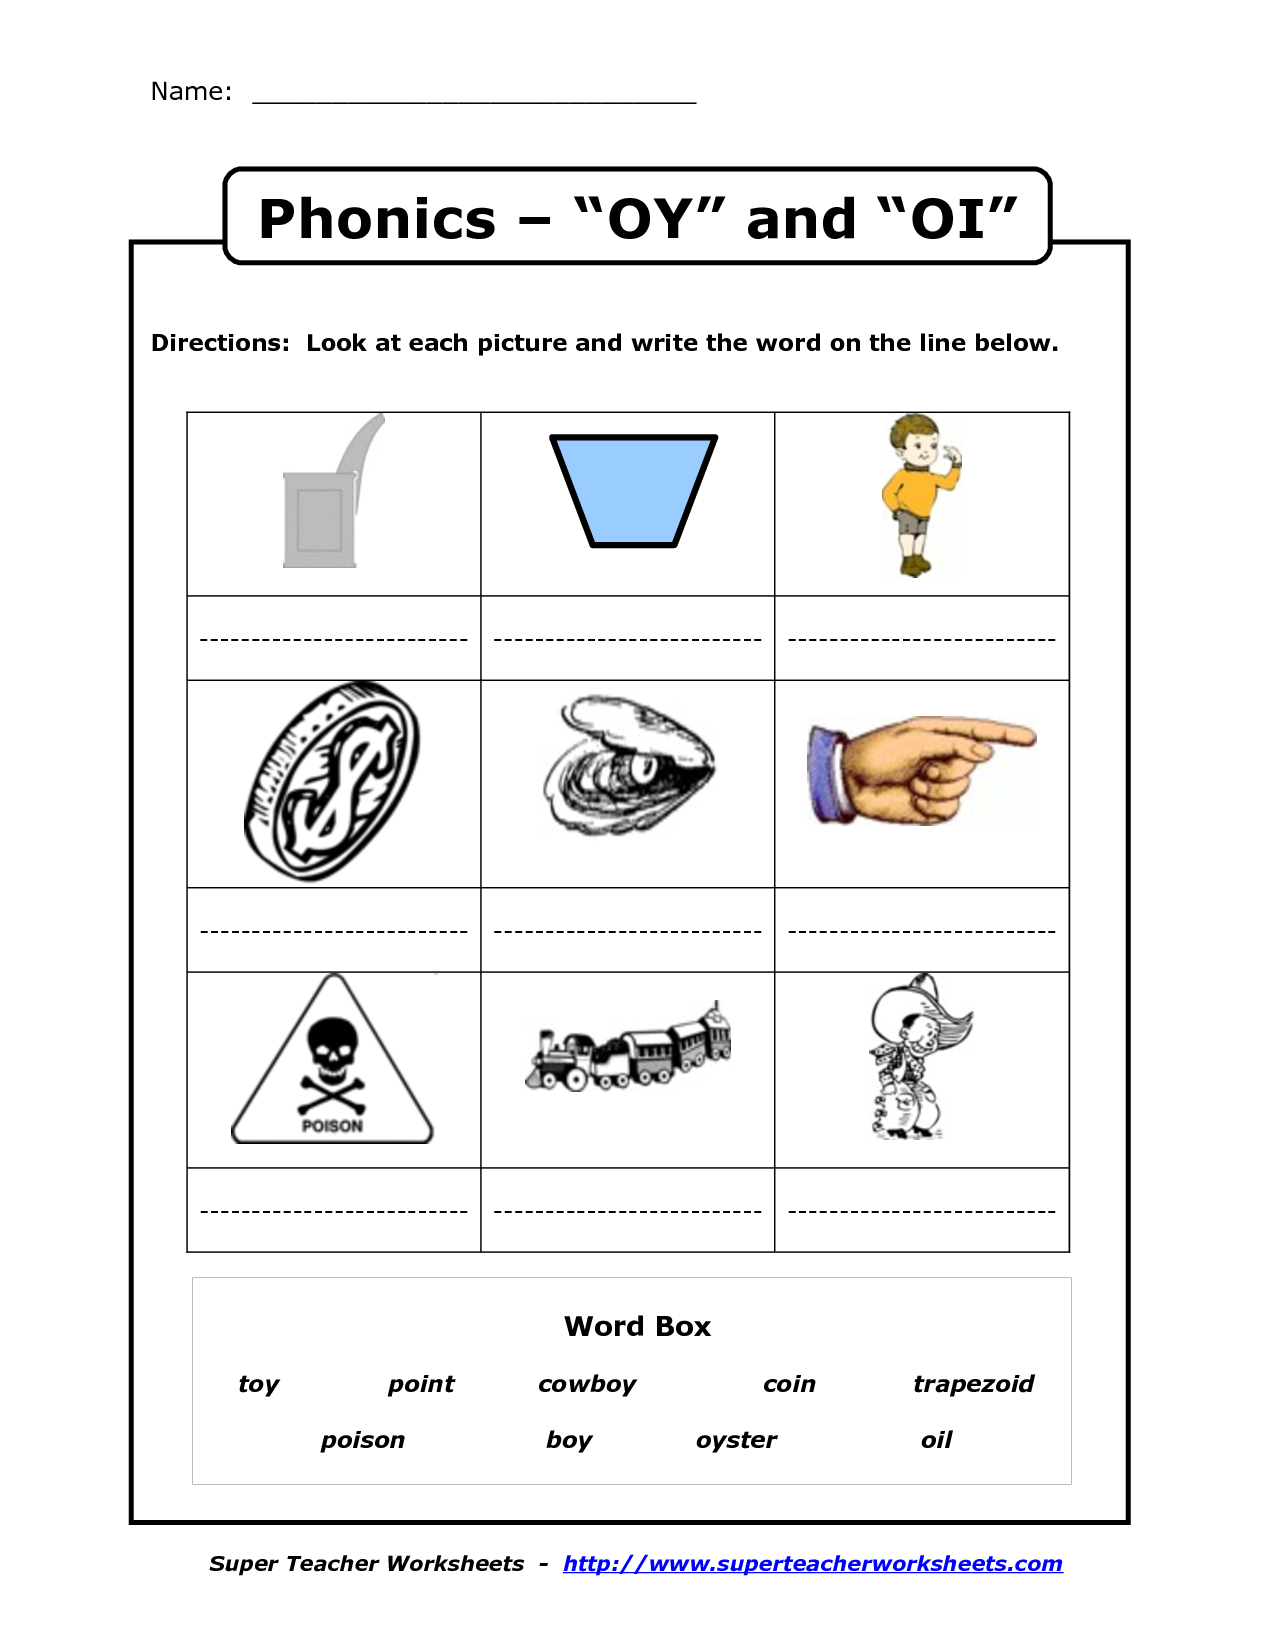 worksheet Free Digraph Worksheets diphthong worksheets phonics kids education games worksheet oi oy sounds diphthongs learn to read worksheets